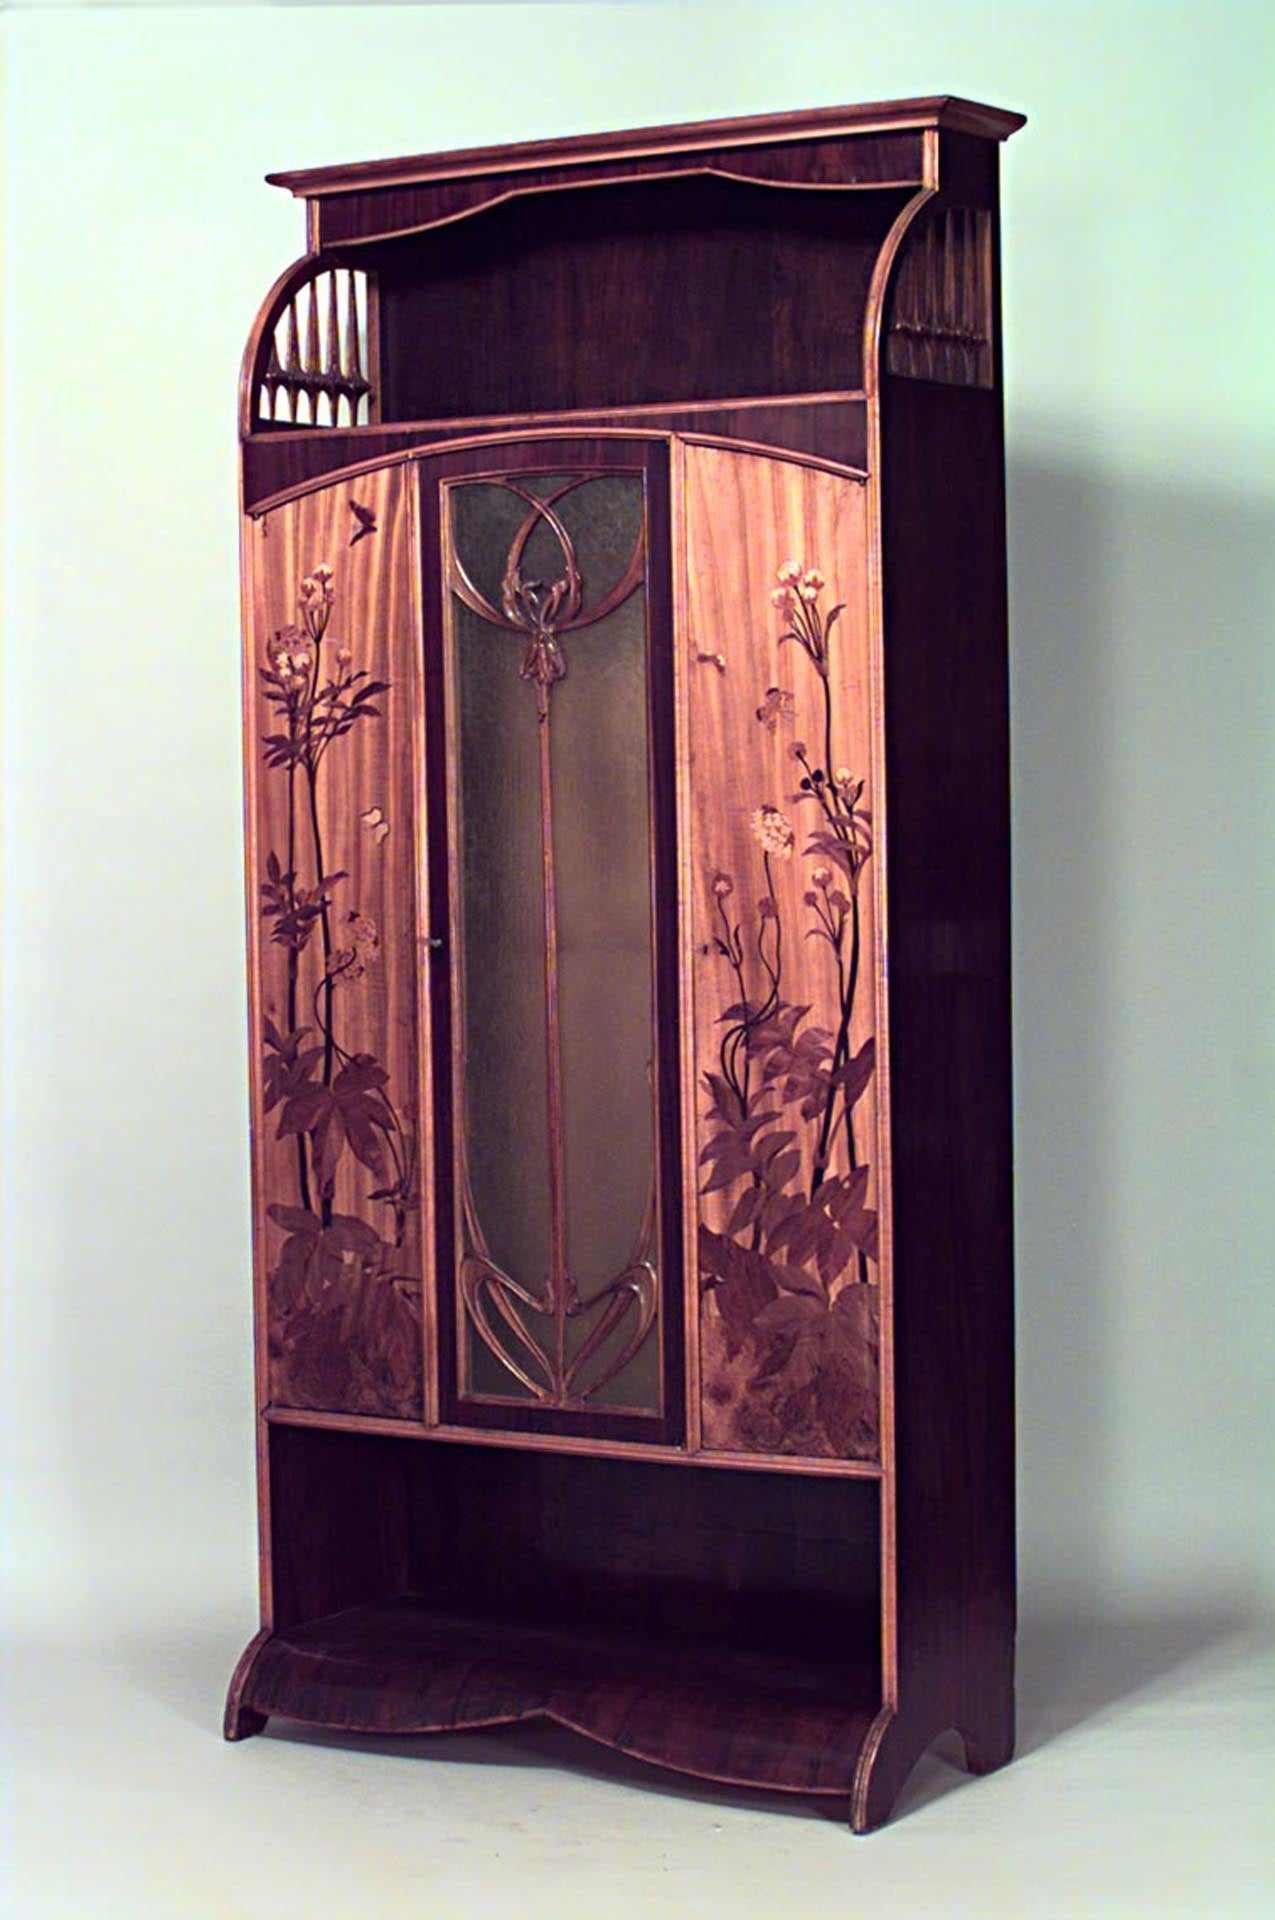 rare and important art nouveau armoire signed by louis majorelle for sale at 1stdibs. Black Bedroom Furniture Sets. Home Design Ideas